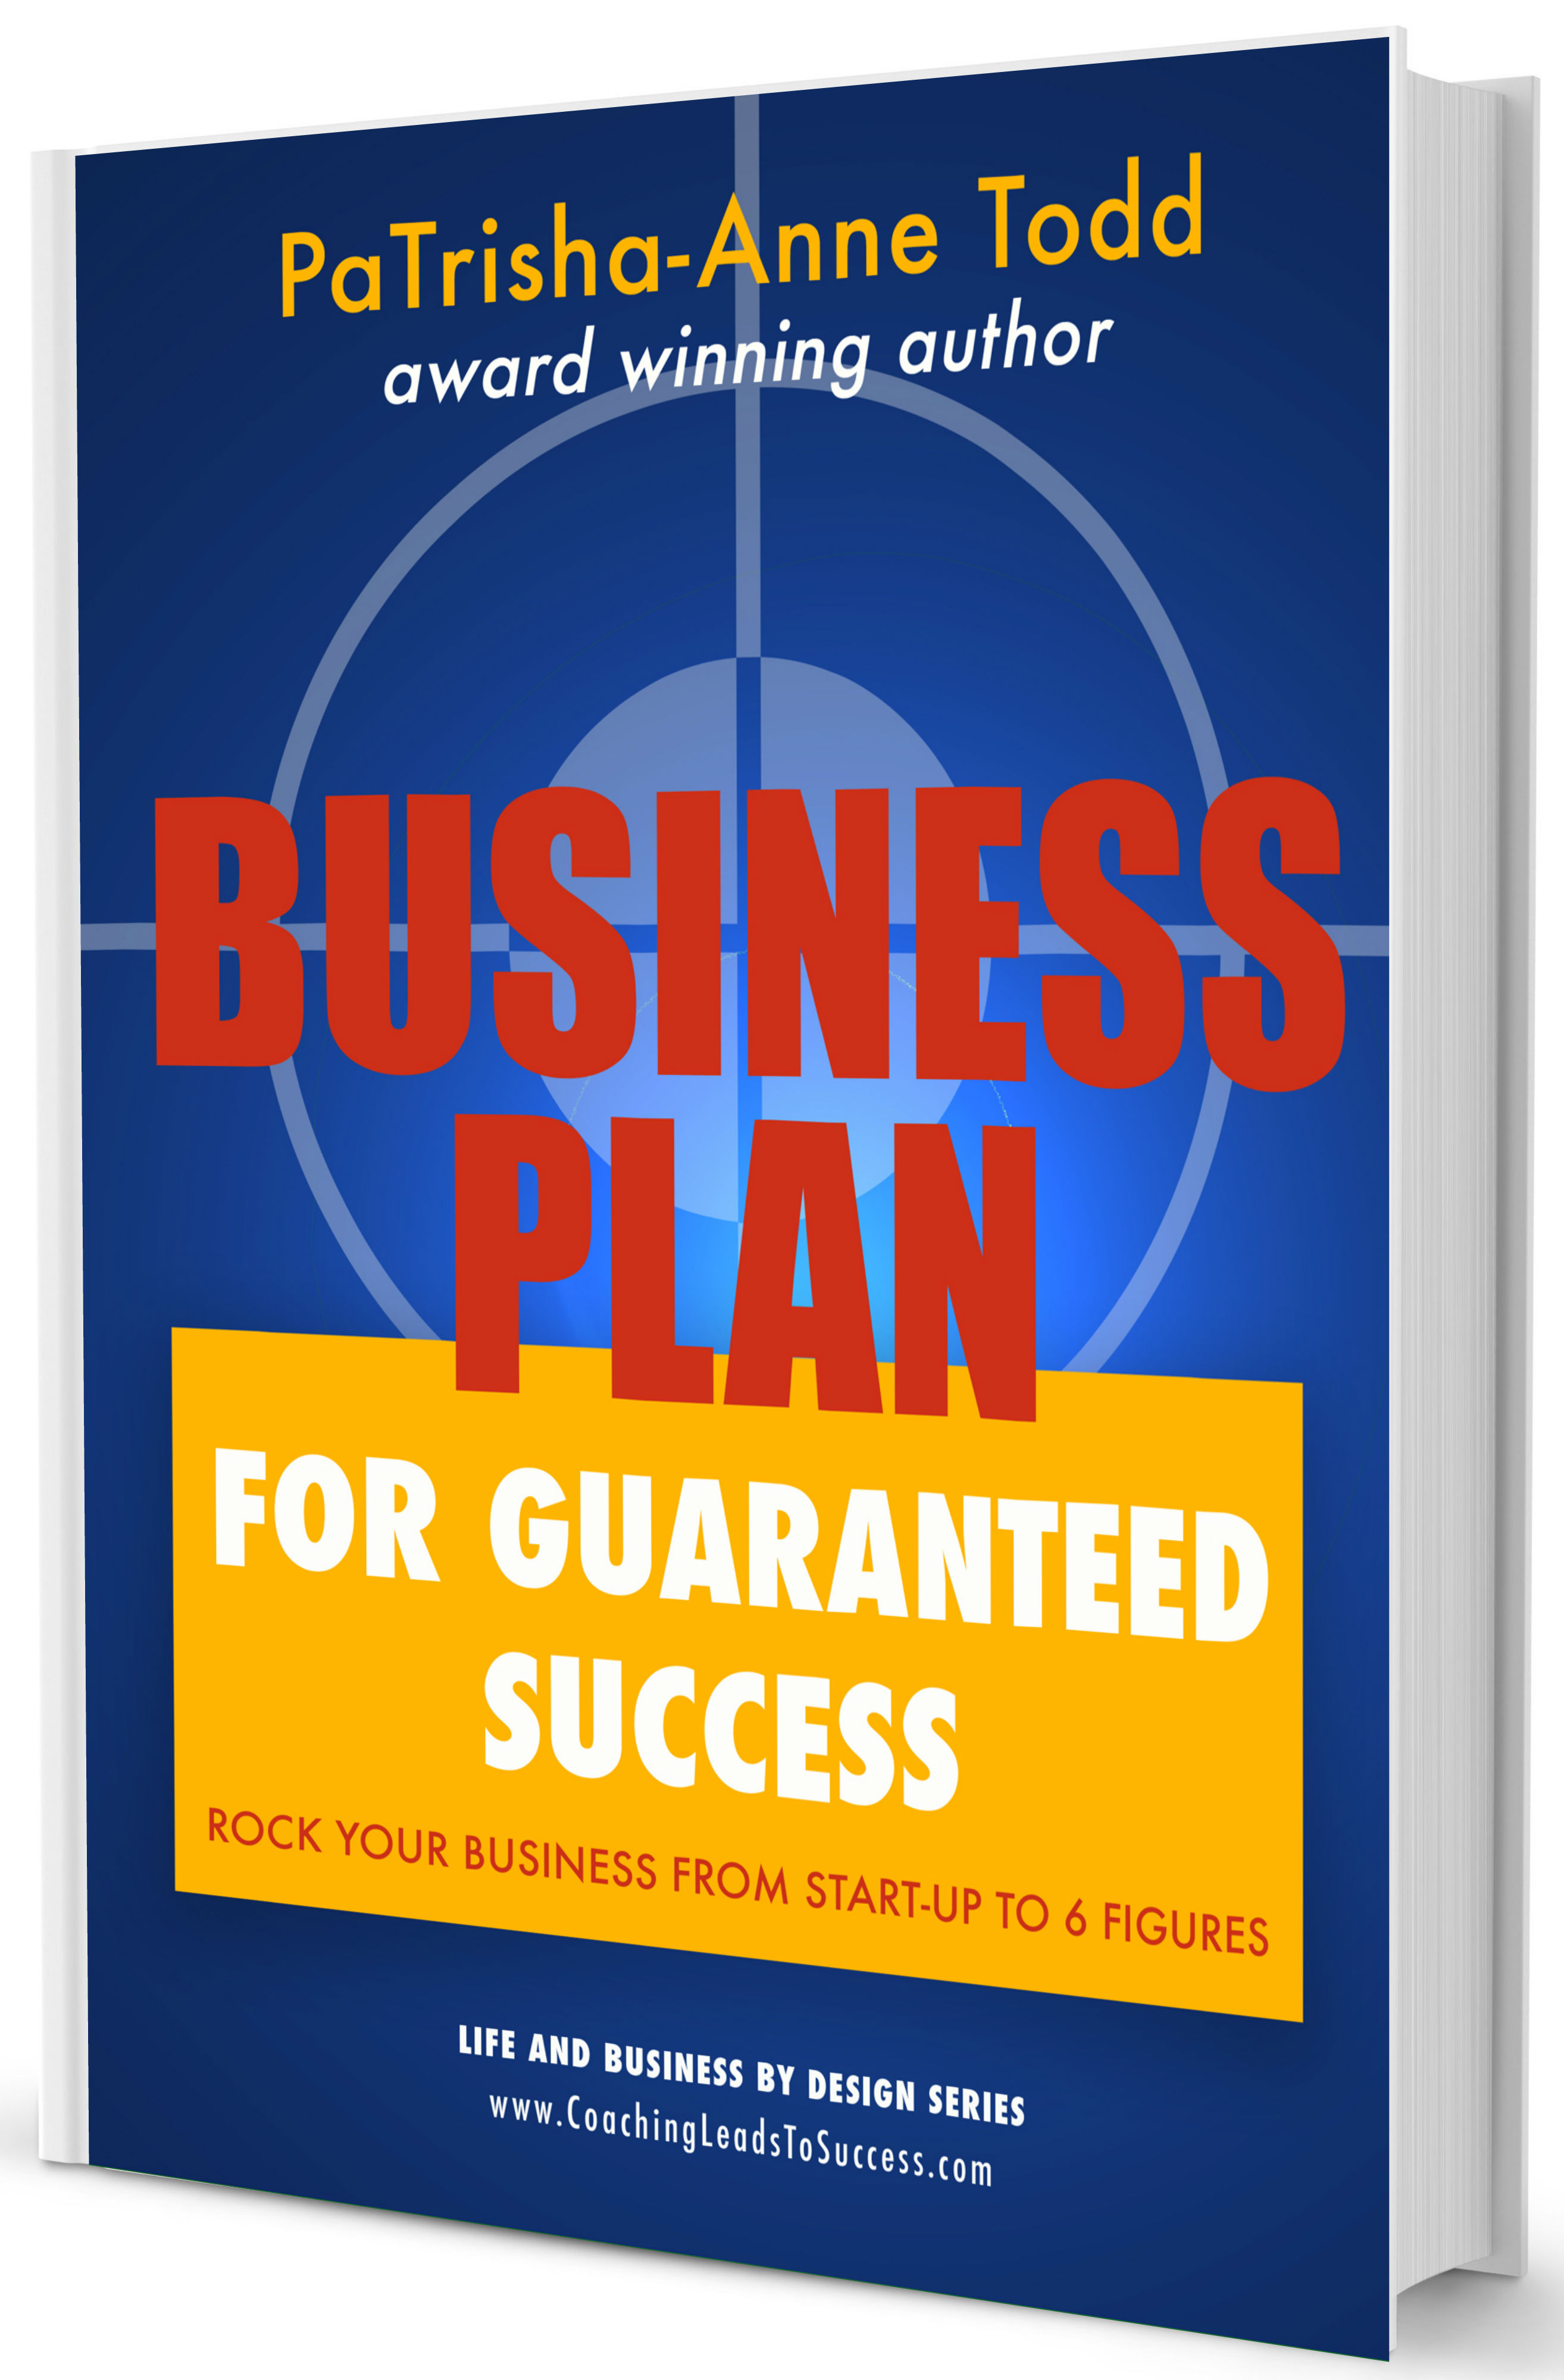 The Business Plan written by Award Wining Author PaTrisha-Anne Todd